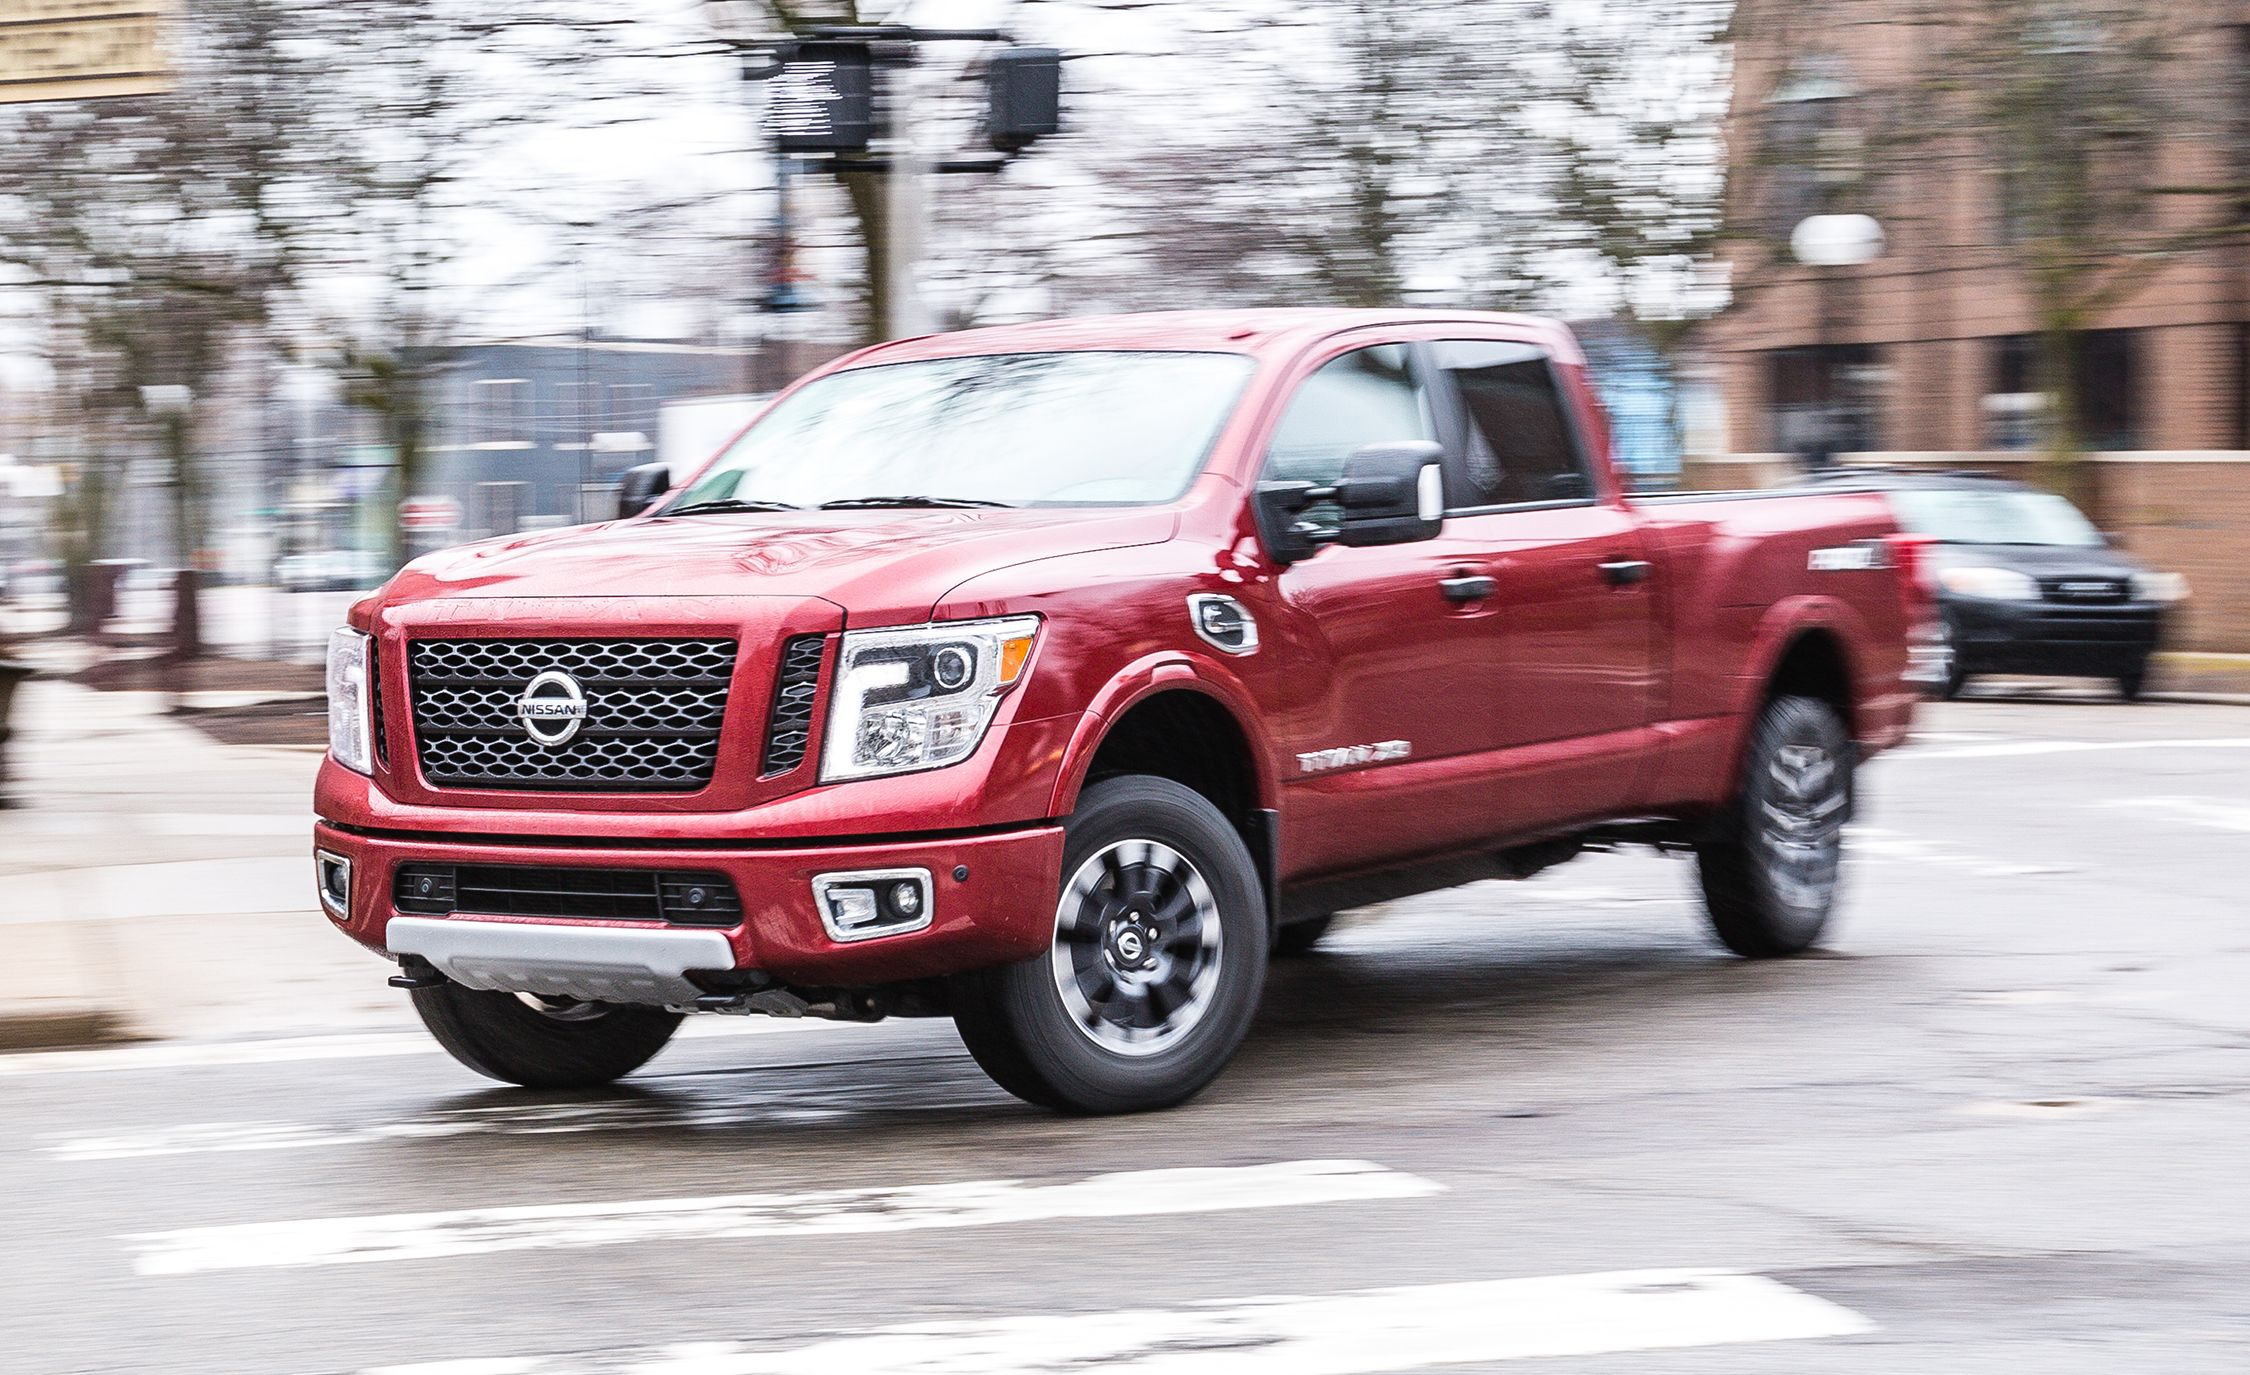 2017 Nissan Titan Xd Cargo Space And Storage Review Car And Driver